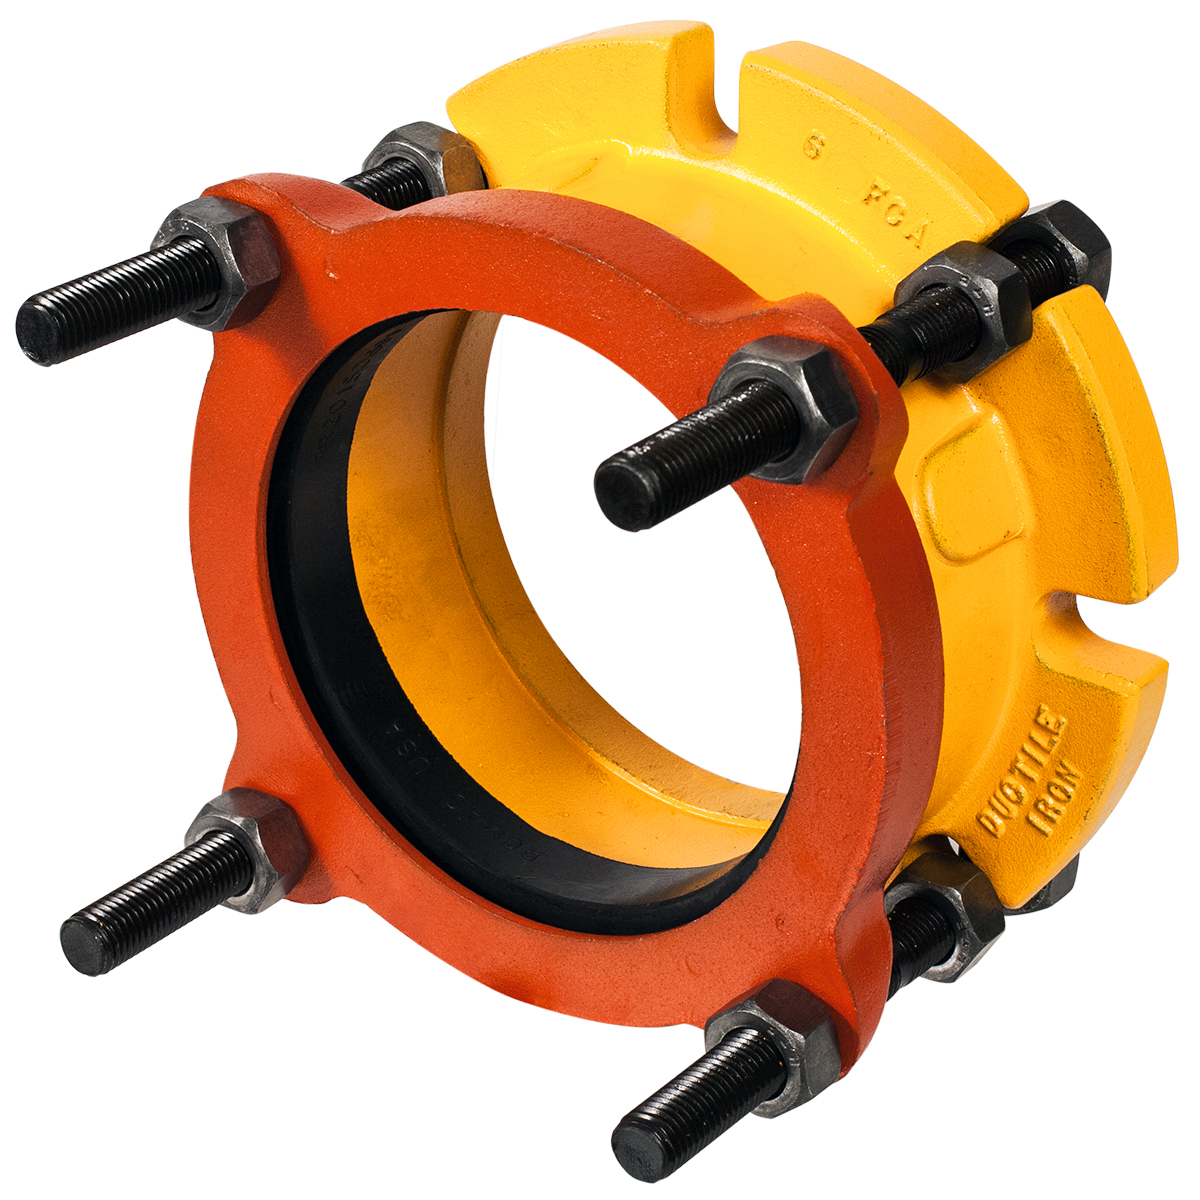 FCA501 - Ductile iron flanged coupling